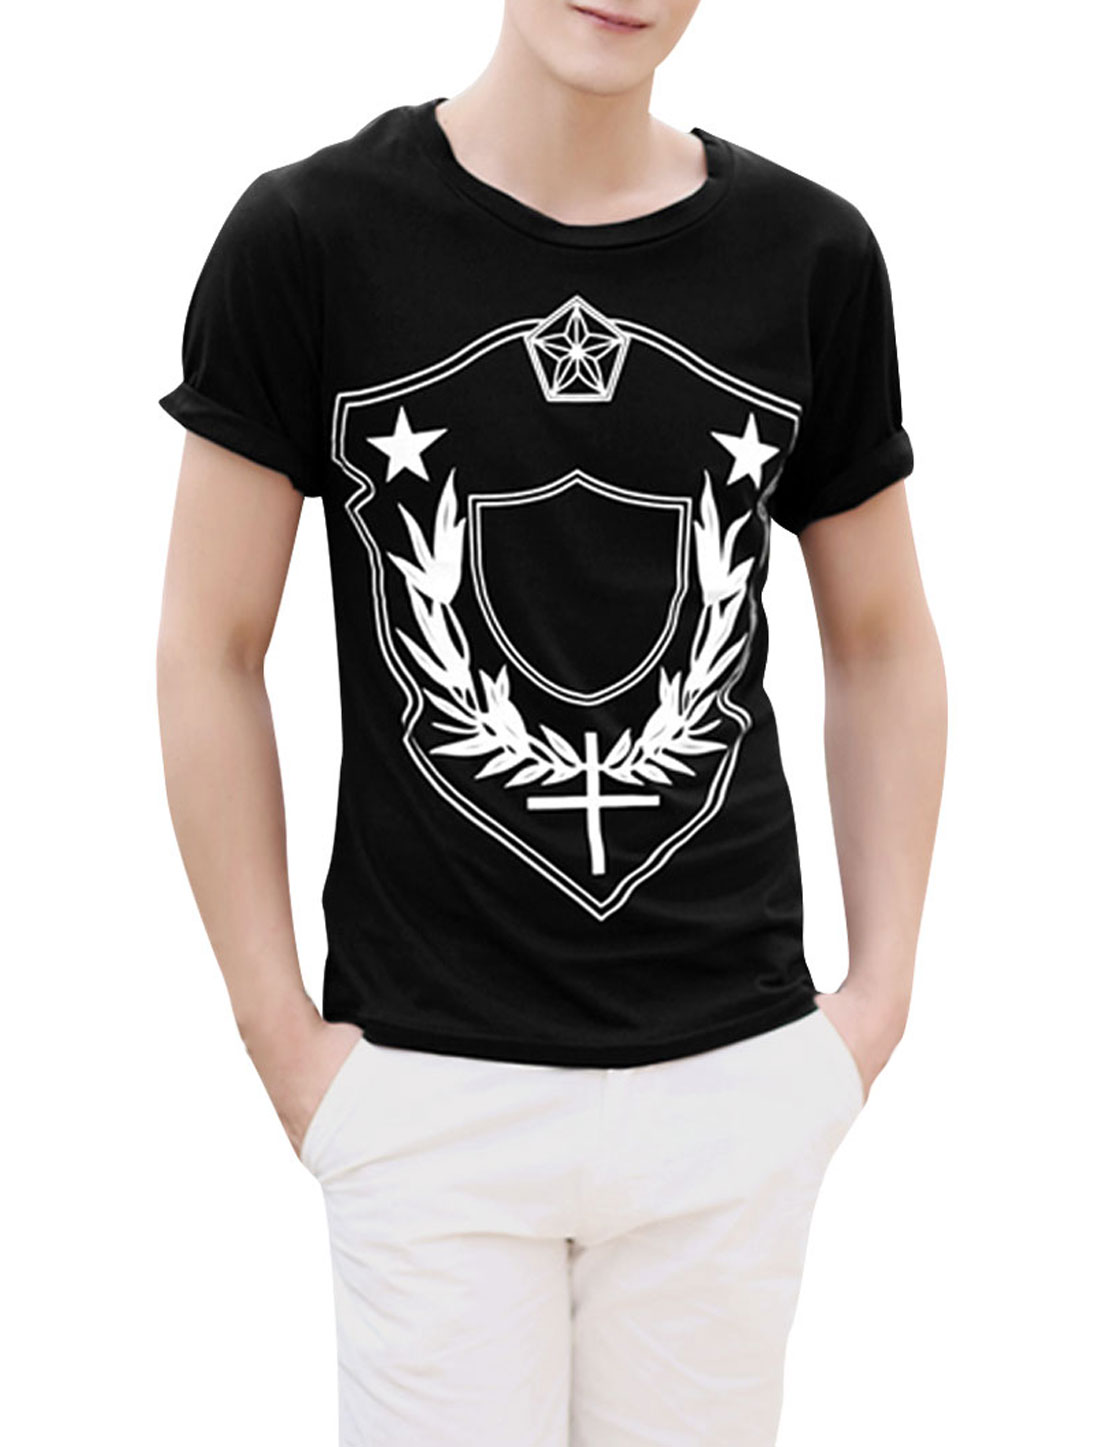 Men Pentagram Stylish Stretchy Short-sleeved Modern Shirt Black M